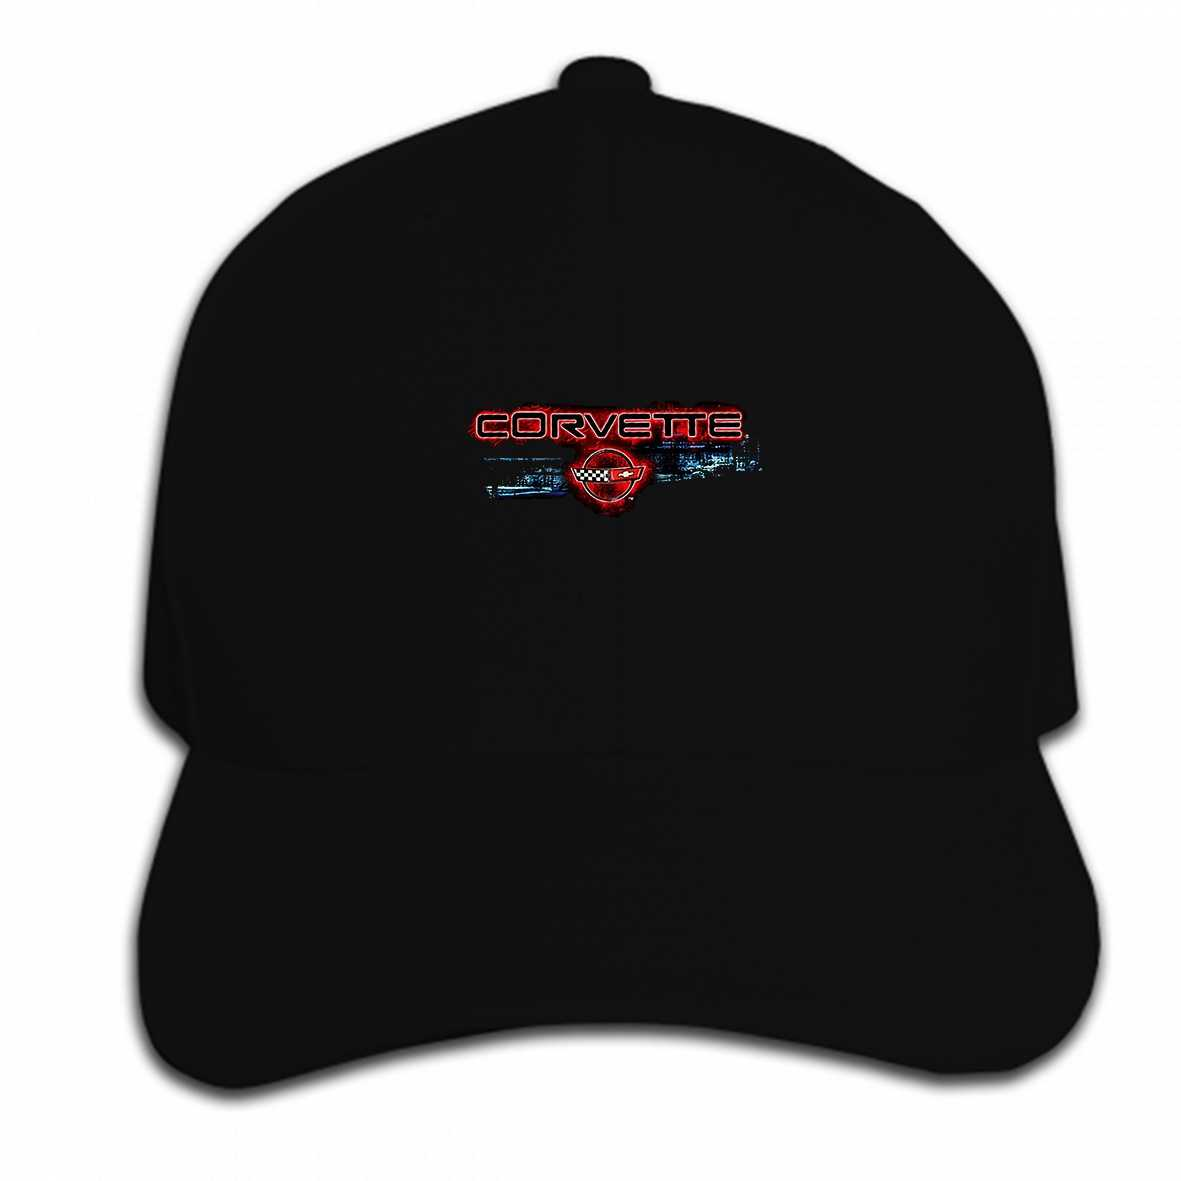 66c7a73a772c6 Print Custom Baseball Cap Wicked Metal Corvette Leave Your Mark Corvette C4  Black Hat Peaked cap